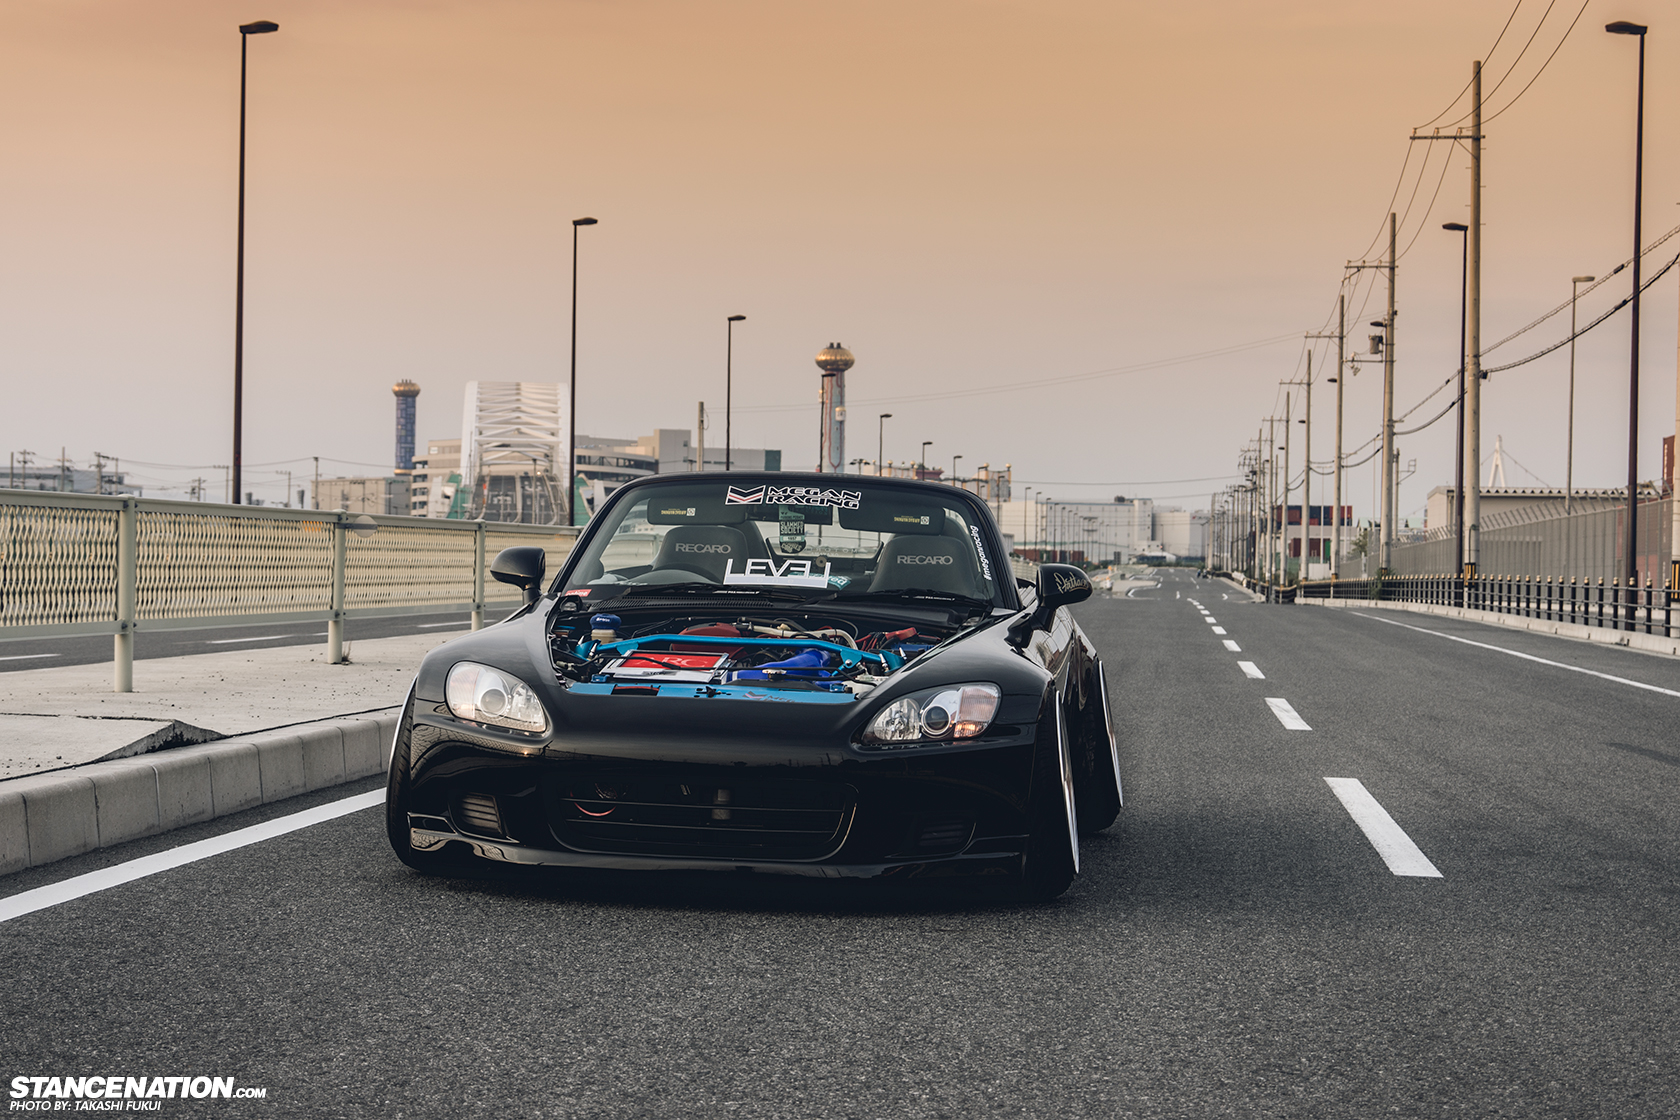 Level One Japan Reitaro S Aggressive Honda S2000